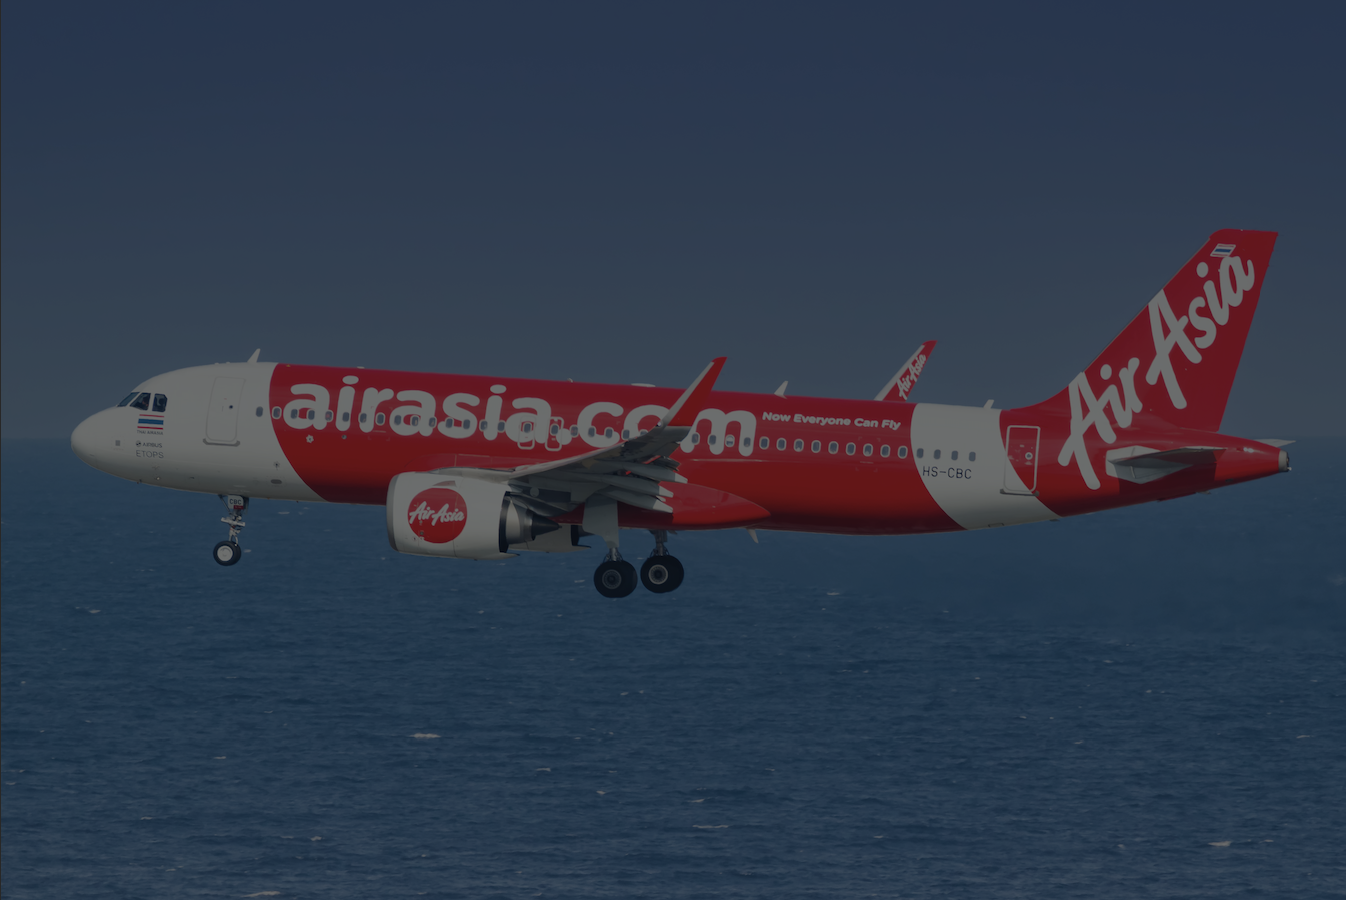 Wizeline Helps AirAsia Launch Two New Applications to Bundle Flights & Hotels for the First Time